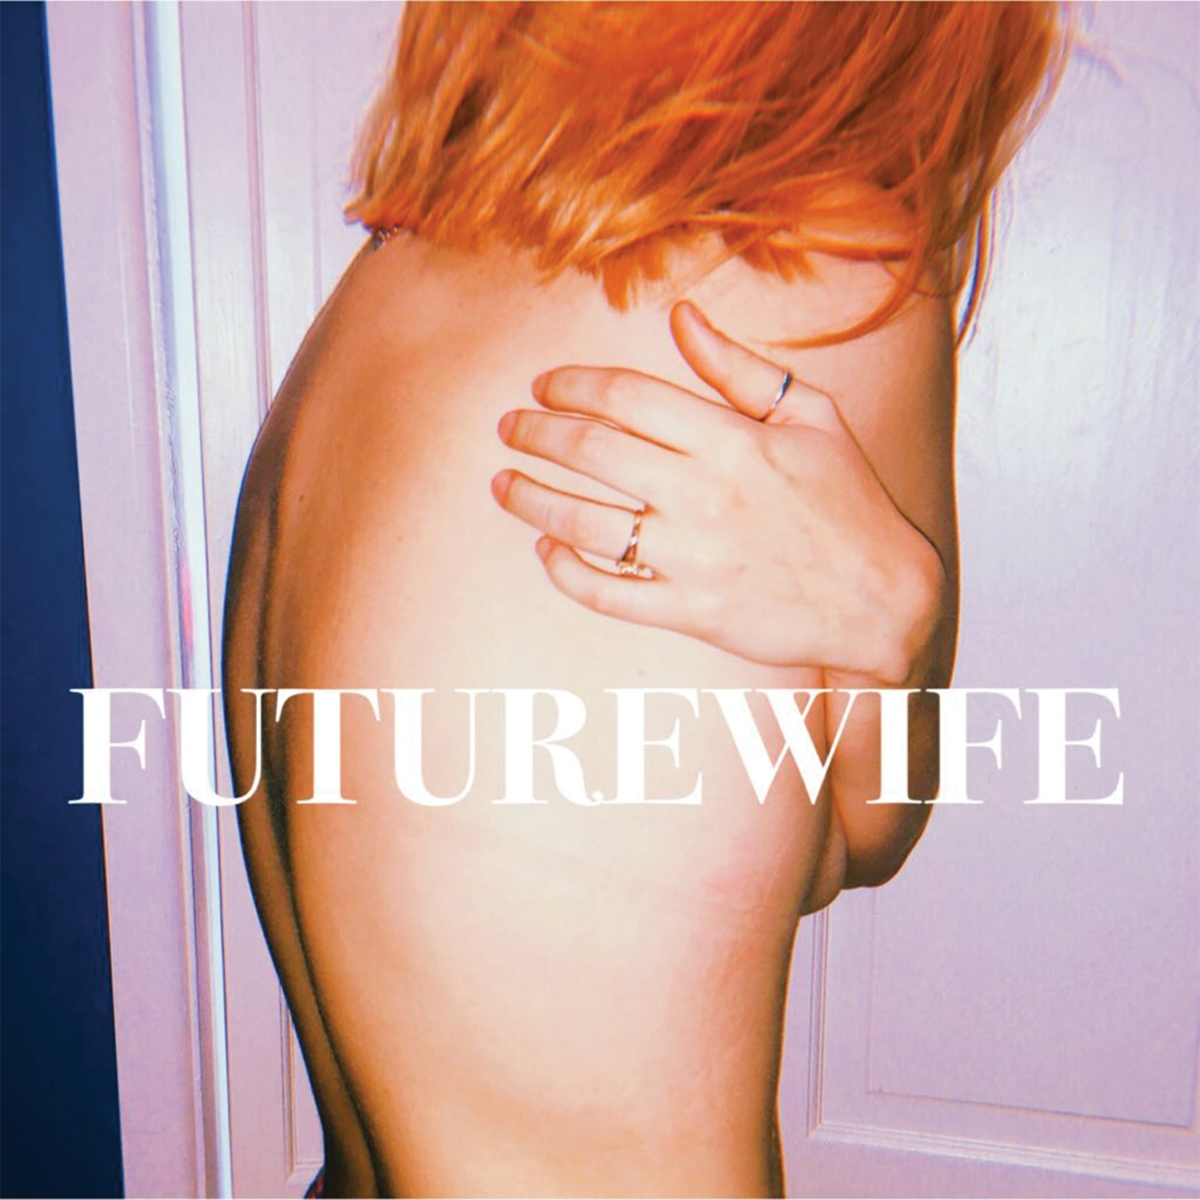 The future is bright for Futurewife ('Nicest Day' Debut EPReview)